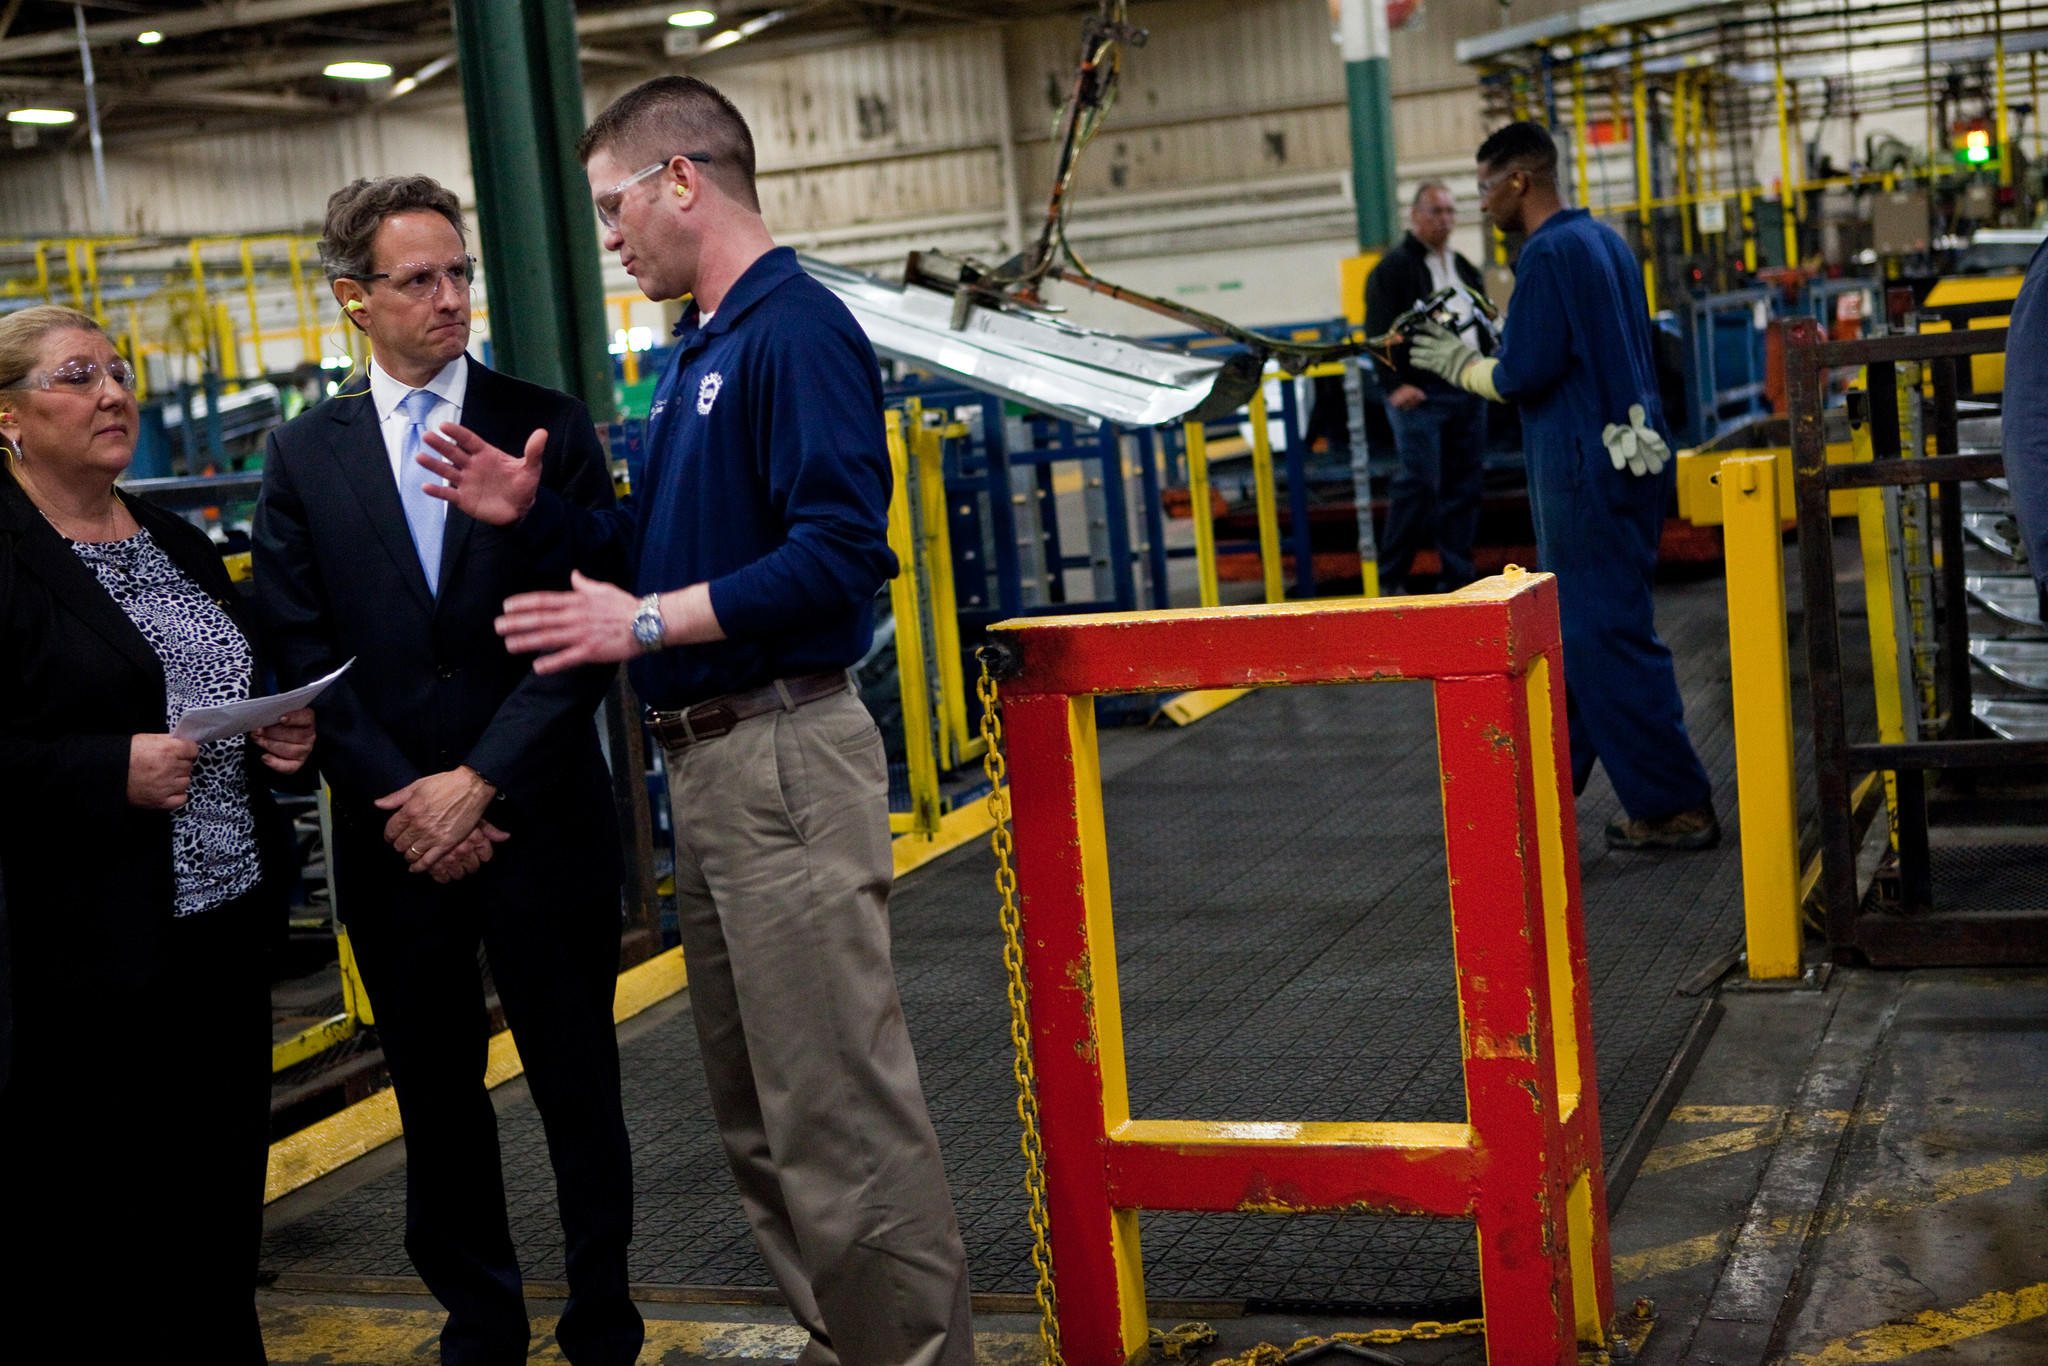 Treasury Secretary Tim Geithner talks to Matt Kolanowski, UAW Local 588 President, right, as he tours the Ford Motor Companys Chicago Stamping Plant in Chicago Heights with Plant Manager Gloria Georger, left, on Wednesday, April 4, 2012.